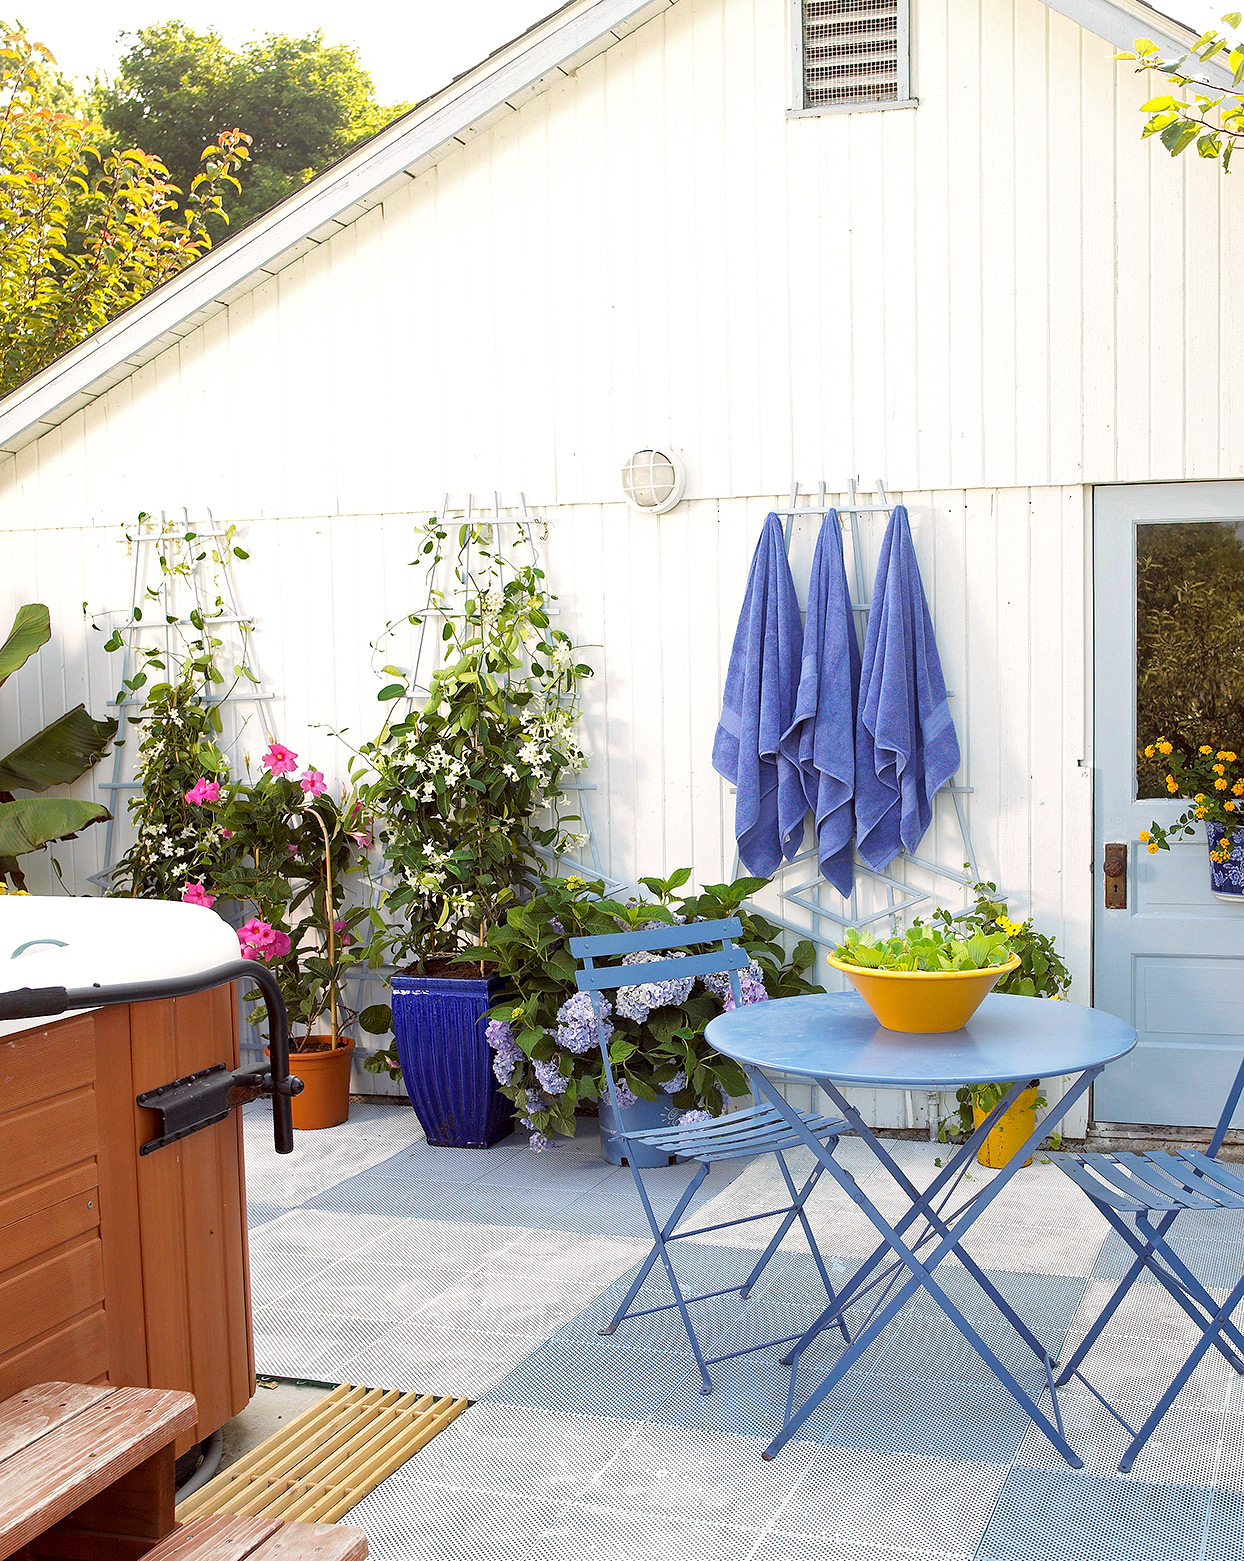 trio of trellises with vines and blue towels on patio